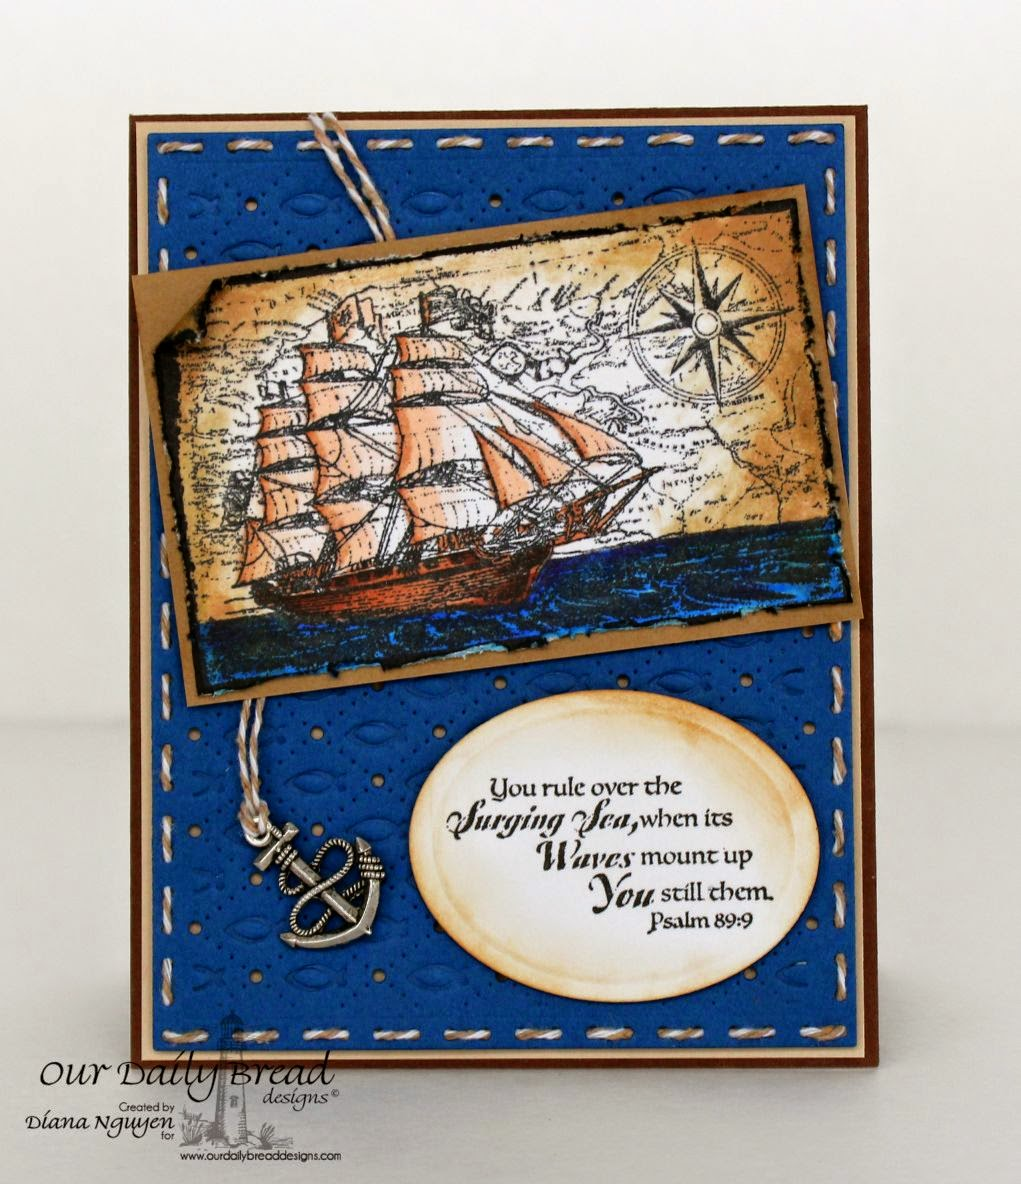 Diana Nguyen, ODBD, Our Daily Bread Design, Surging Sea, masculine card, nautical